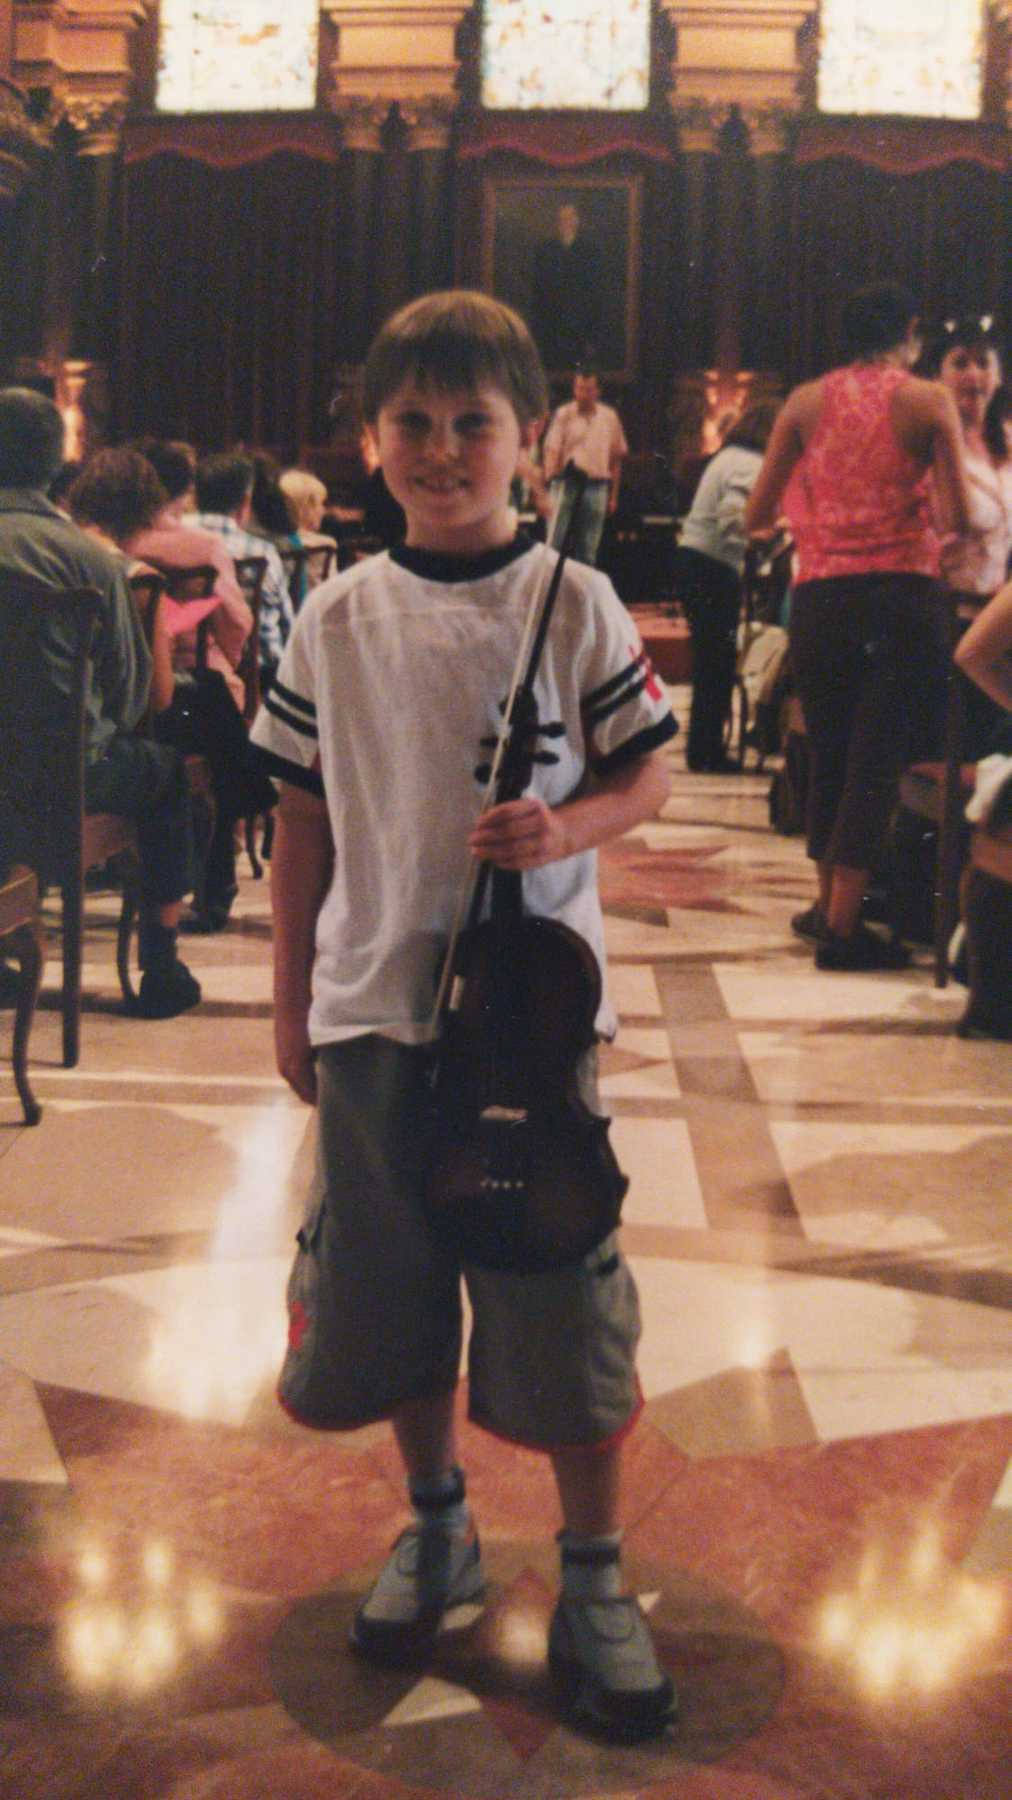 Young Sash about to play violin at town hall in Donostia